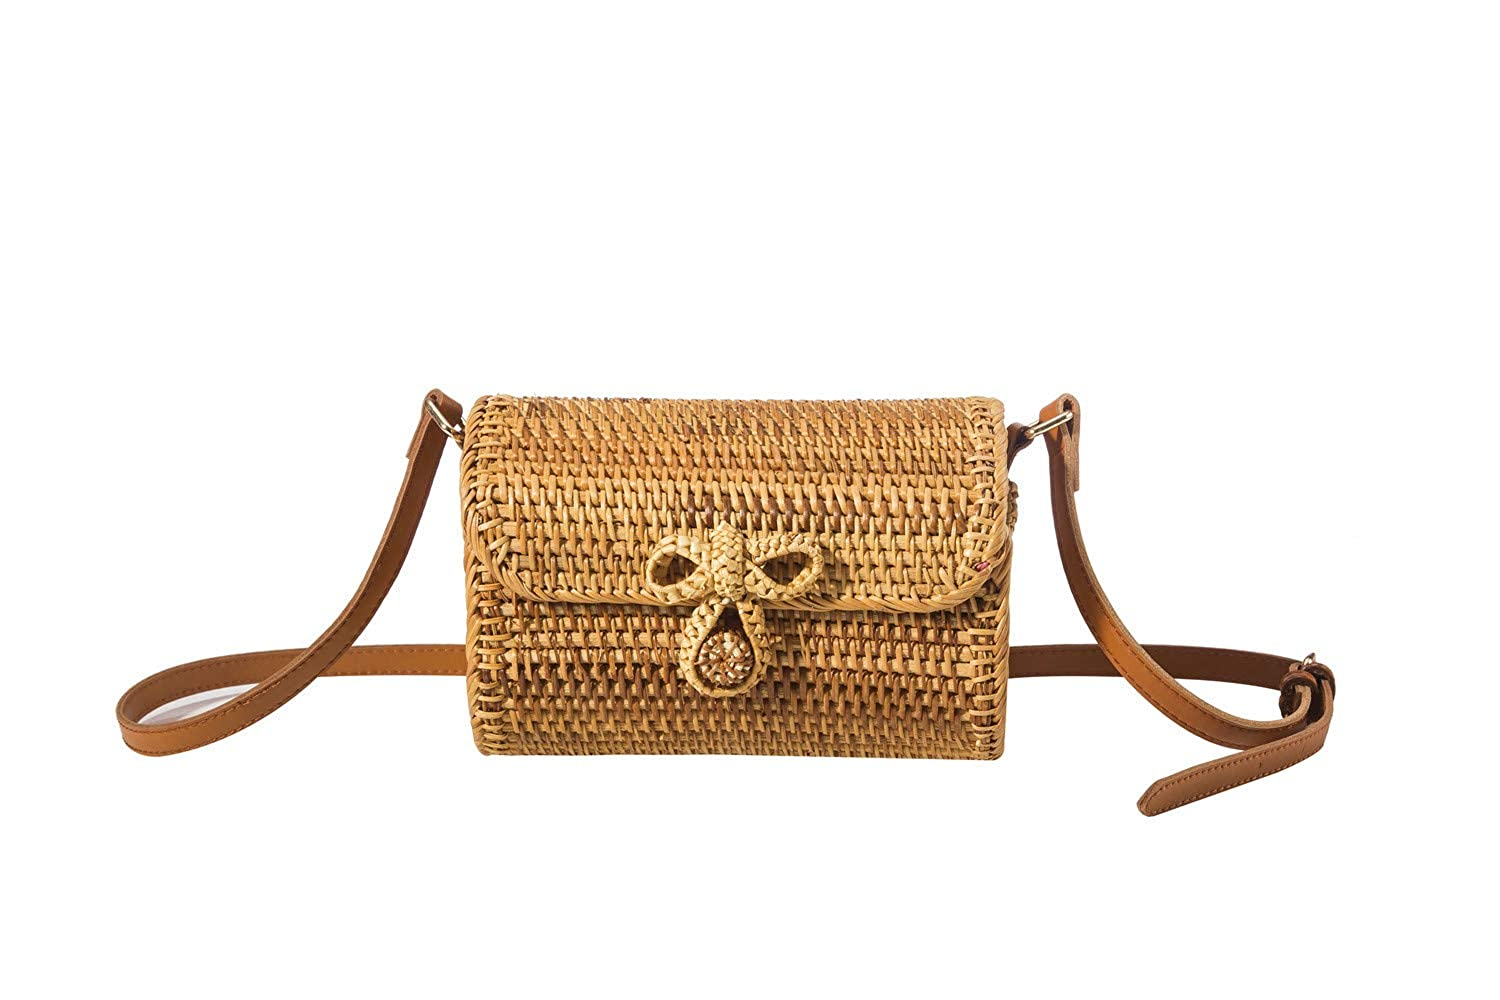 Oval BOKPLD Bali Ata Rattan Woven Crossbody Bag   Backpack   Shoulder bag with Bow Clasp for Women